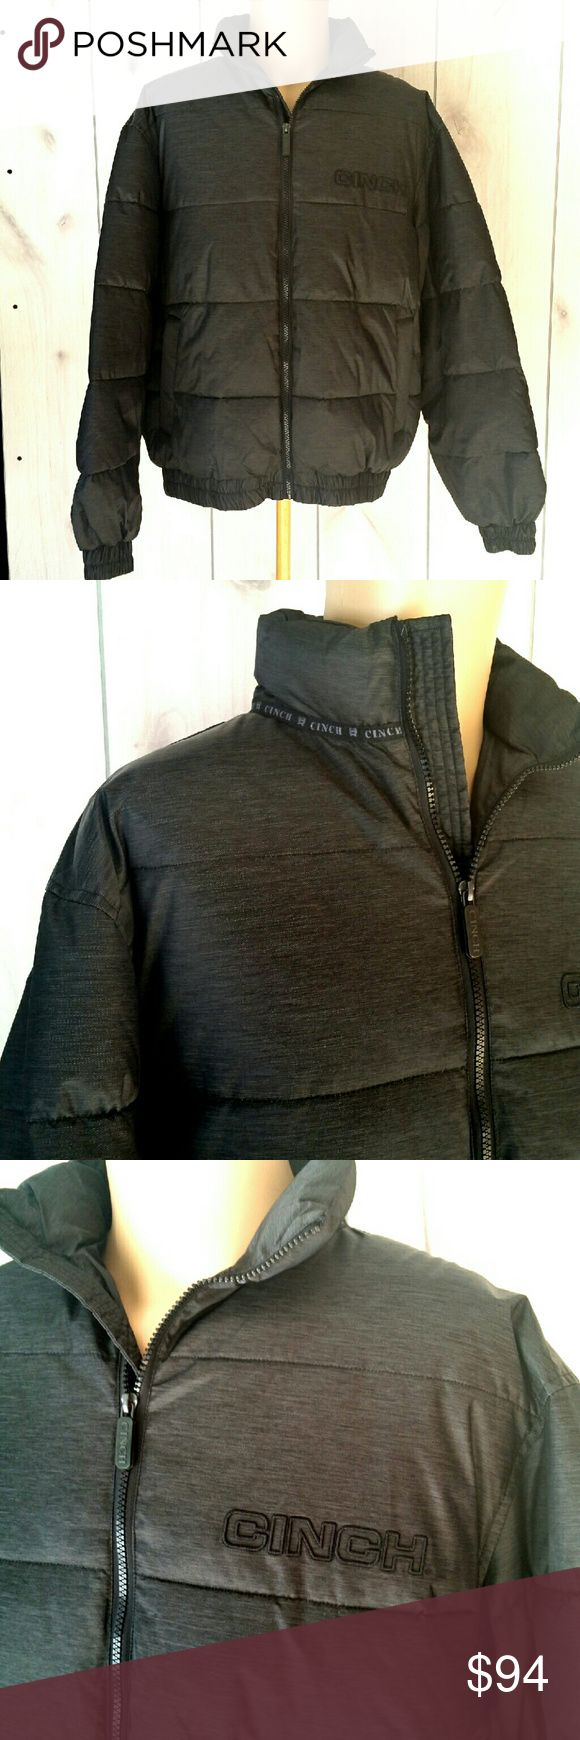 """Mens Puffer Coat by Cinch Black NEW with tag sz M Puffer Coat for men. By Cinch Jean Co. Two zippered hand warmer pockets. No inside pockets. Elastic cuffs and waist. Polyester fill. Not feather down. Outer material is a poly nylon blend. Chest measurement lying flat from armpit to armpit is 25"""". Length from top of shoulder to bottom is 26"""". Sleeve from collar to end of cuff is 32"""". Brand new with tags, retails for $200. Cinch Jackets & Coats Puffers"""